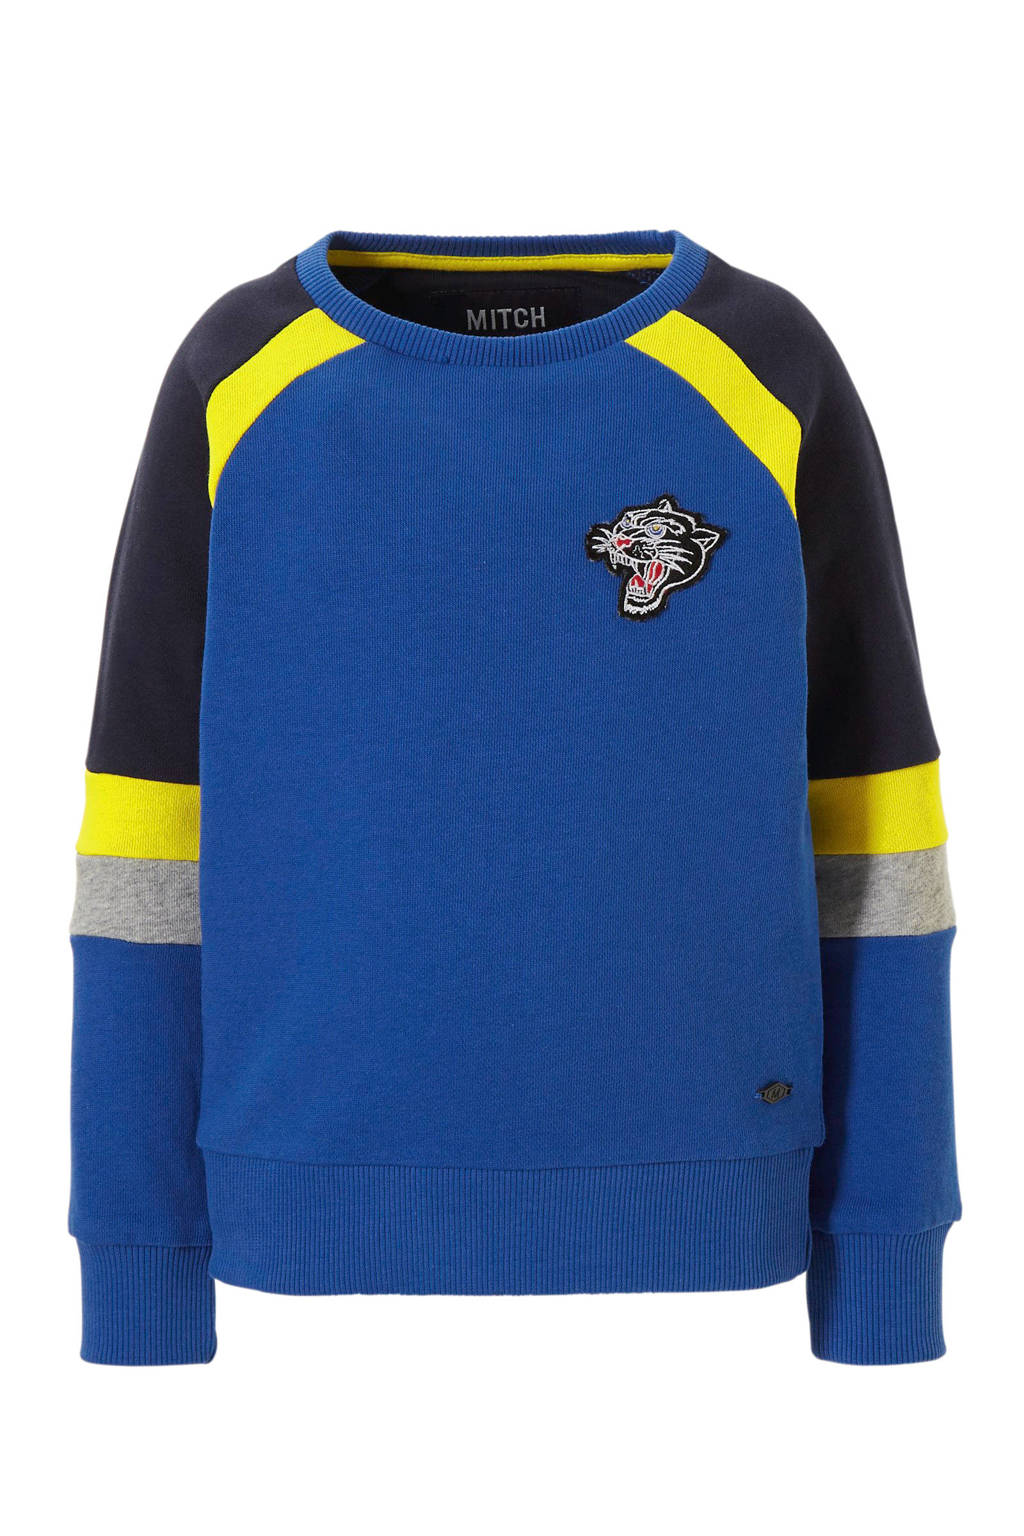 Mitch sweater Lavell met colourblocking, Blauw